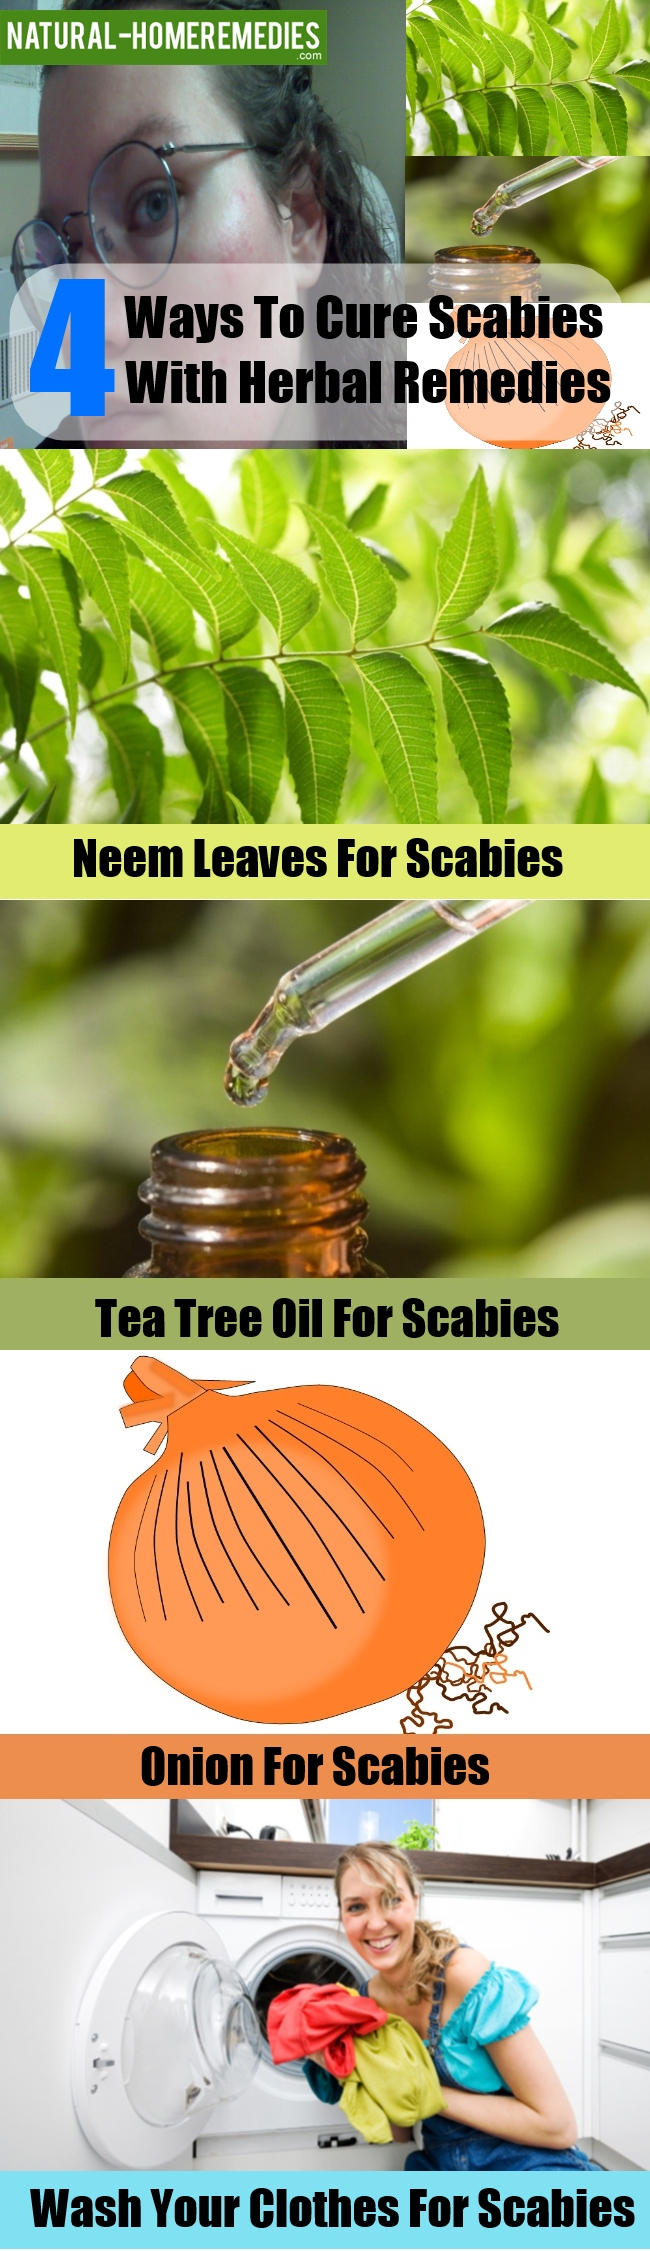 Cure Scabies With Natural And Herbal Remedies